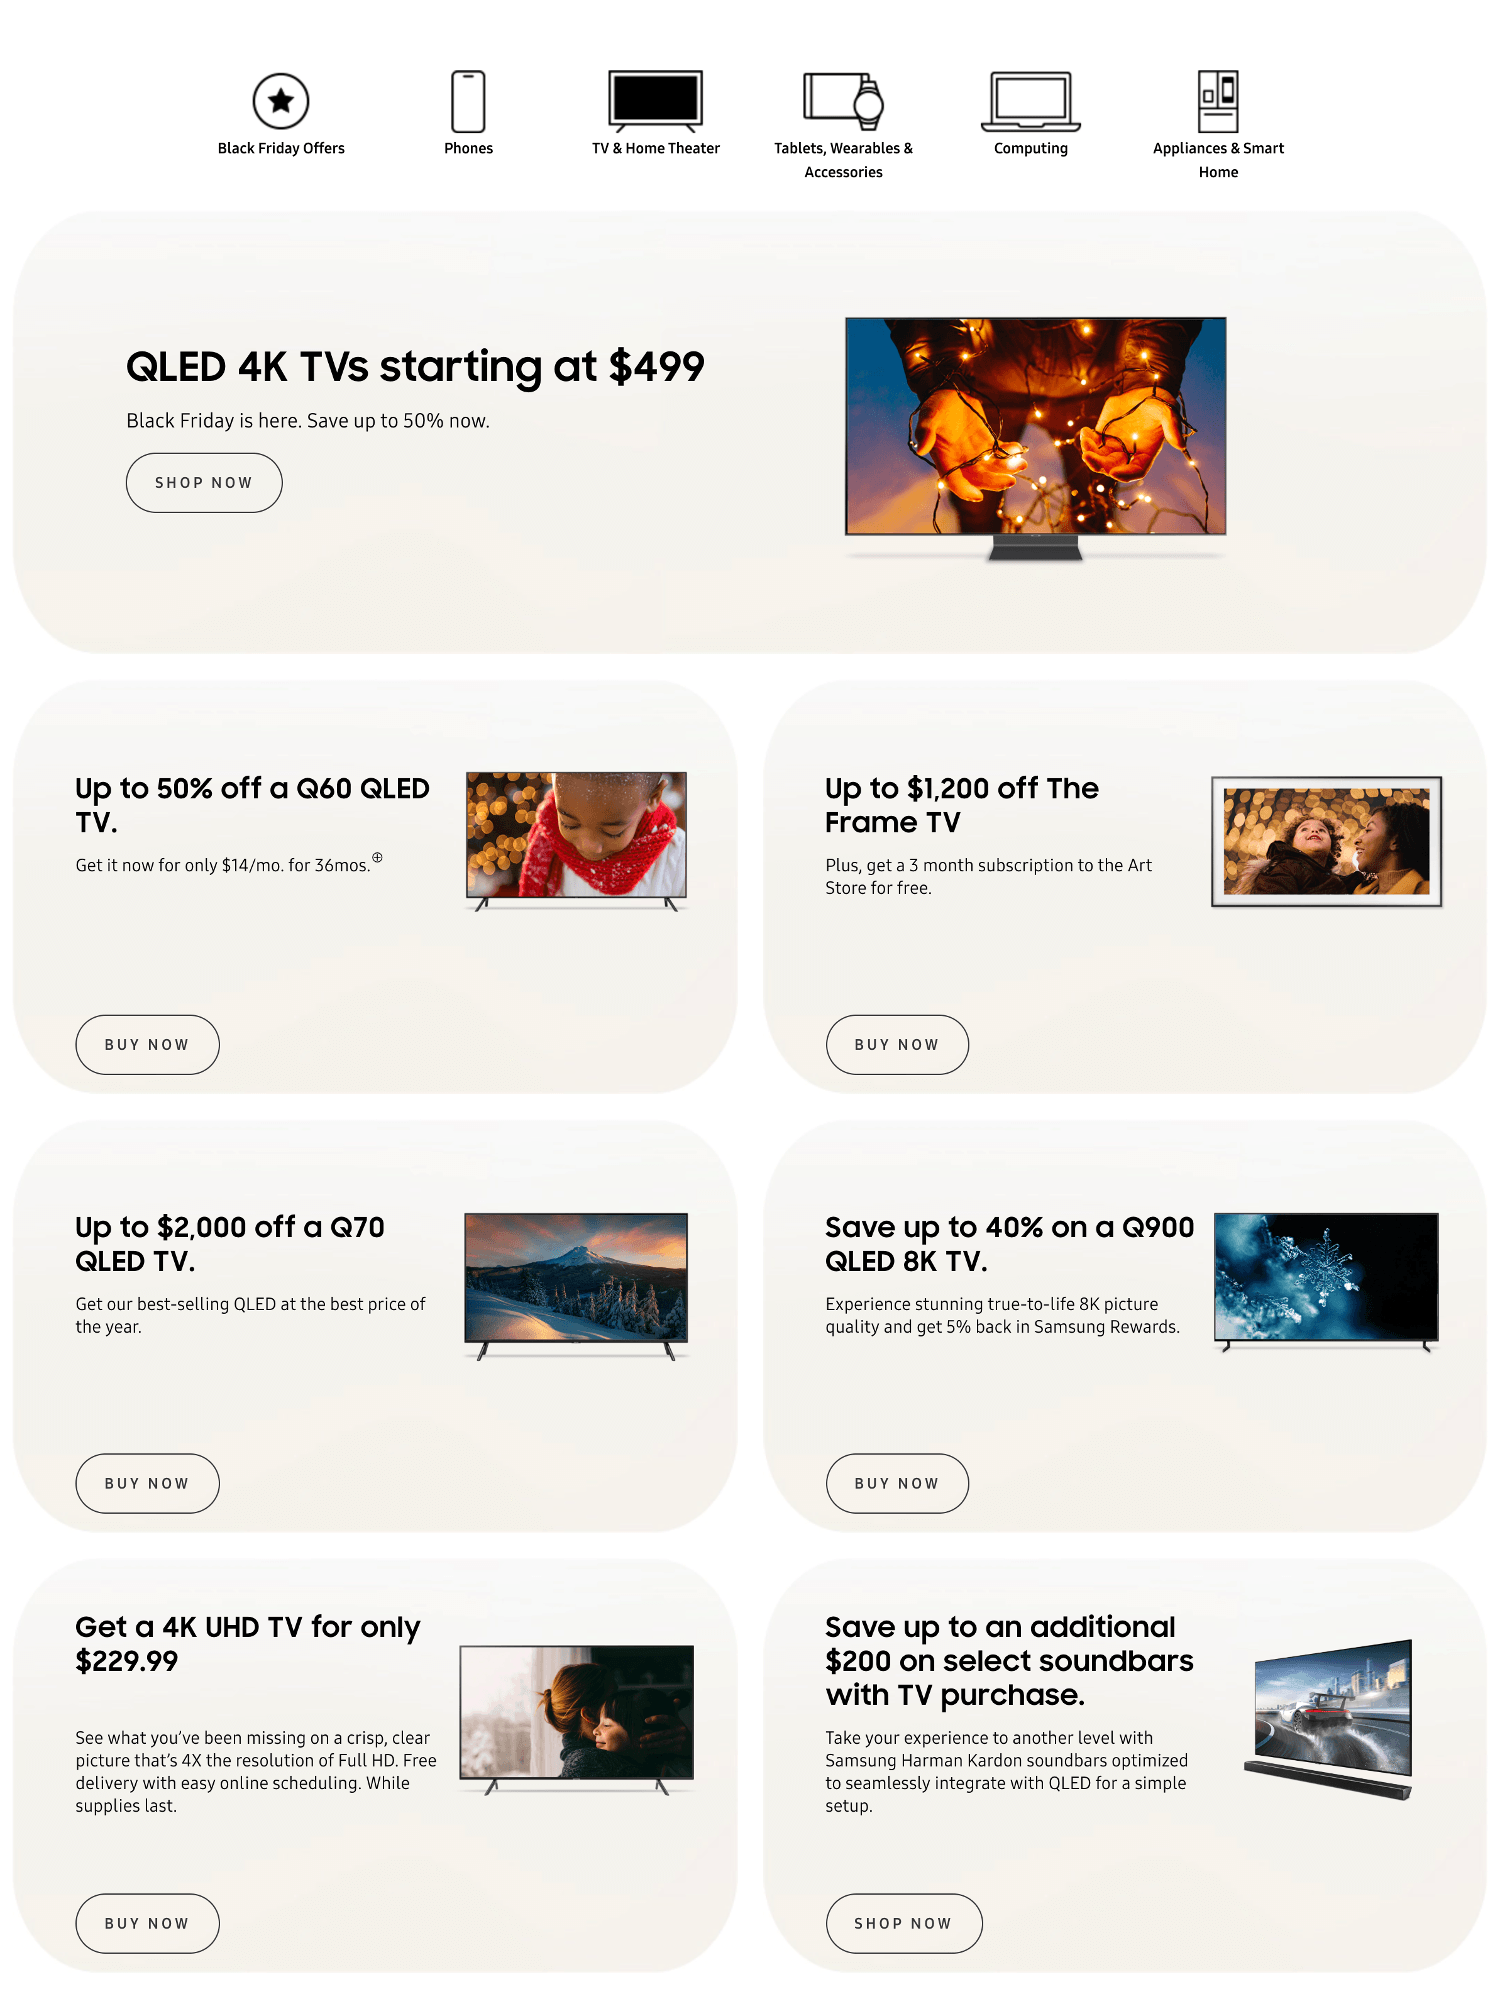 Samsung Black Friday 2019 Page 2